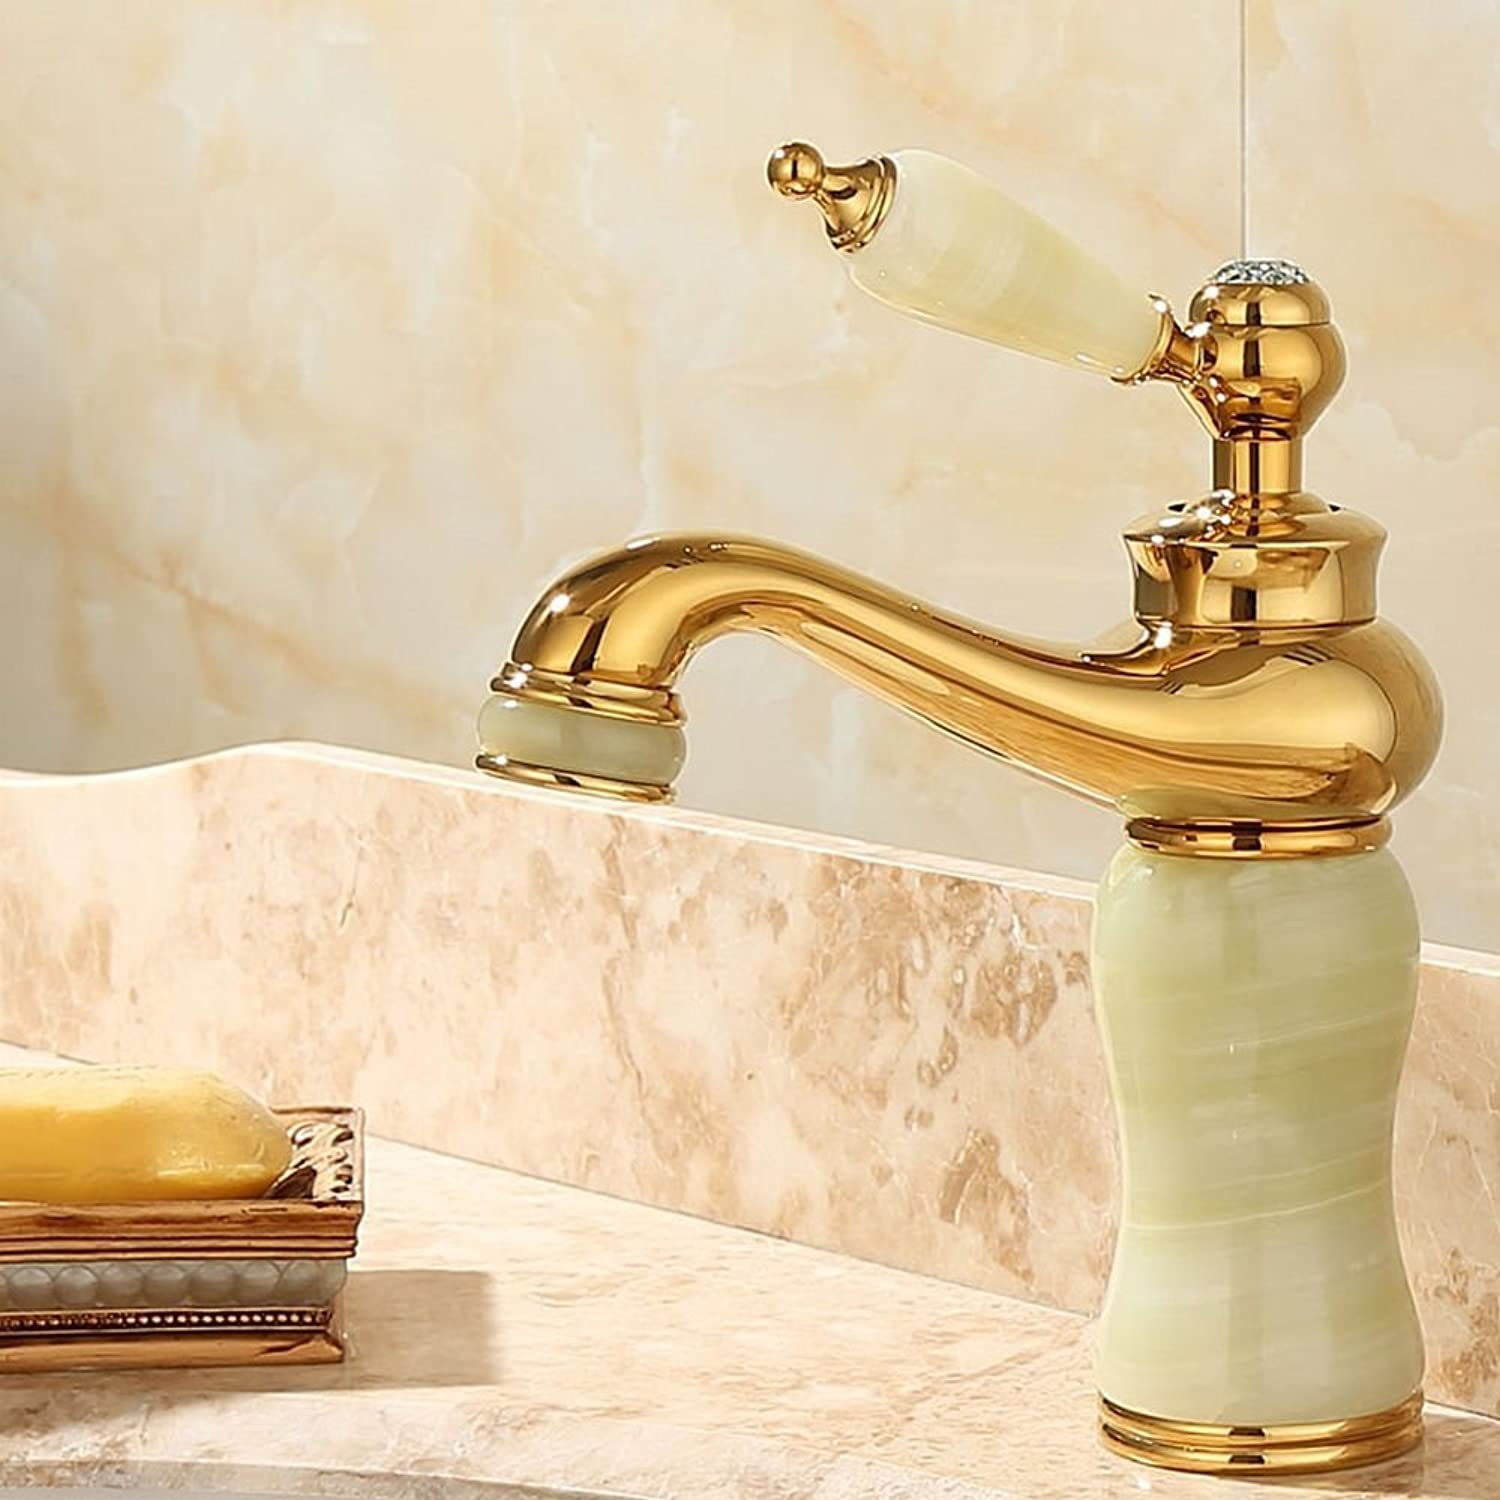 Rmckuva Bathroom Sink Taps Bathroom Sink Faucet Modern Single handle faucet Brass Blender Curved mouth Jade faucet Cyan-09